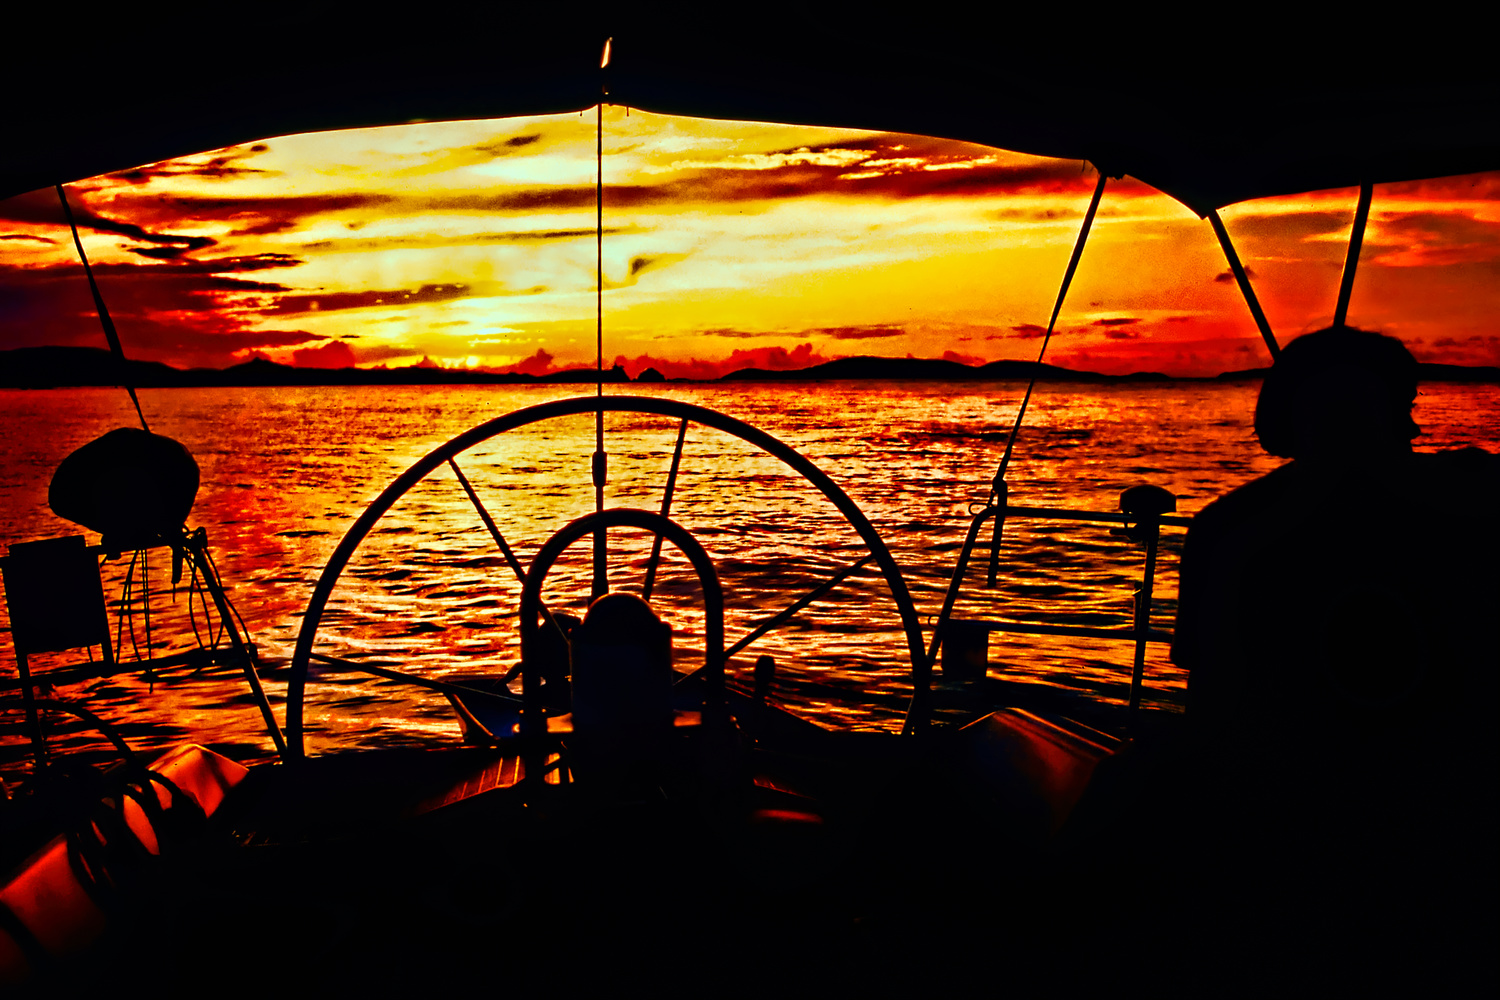 Sailing in the islands at sunset. by Bill Jonscher